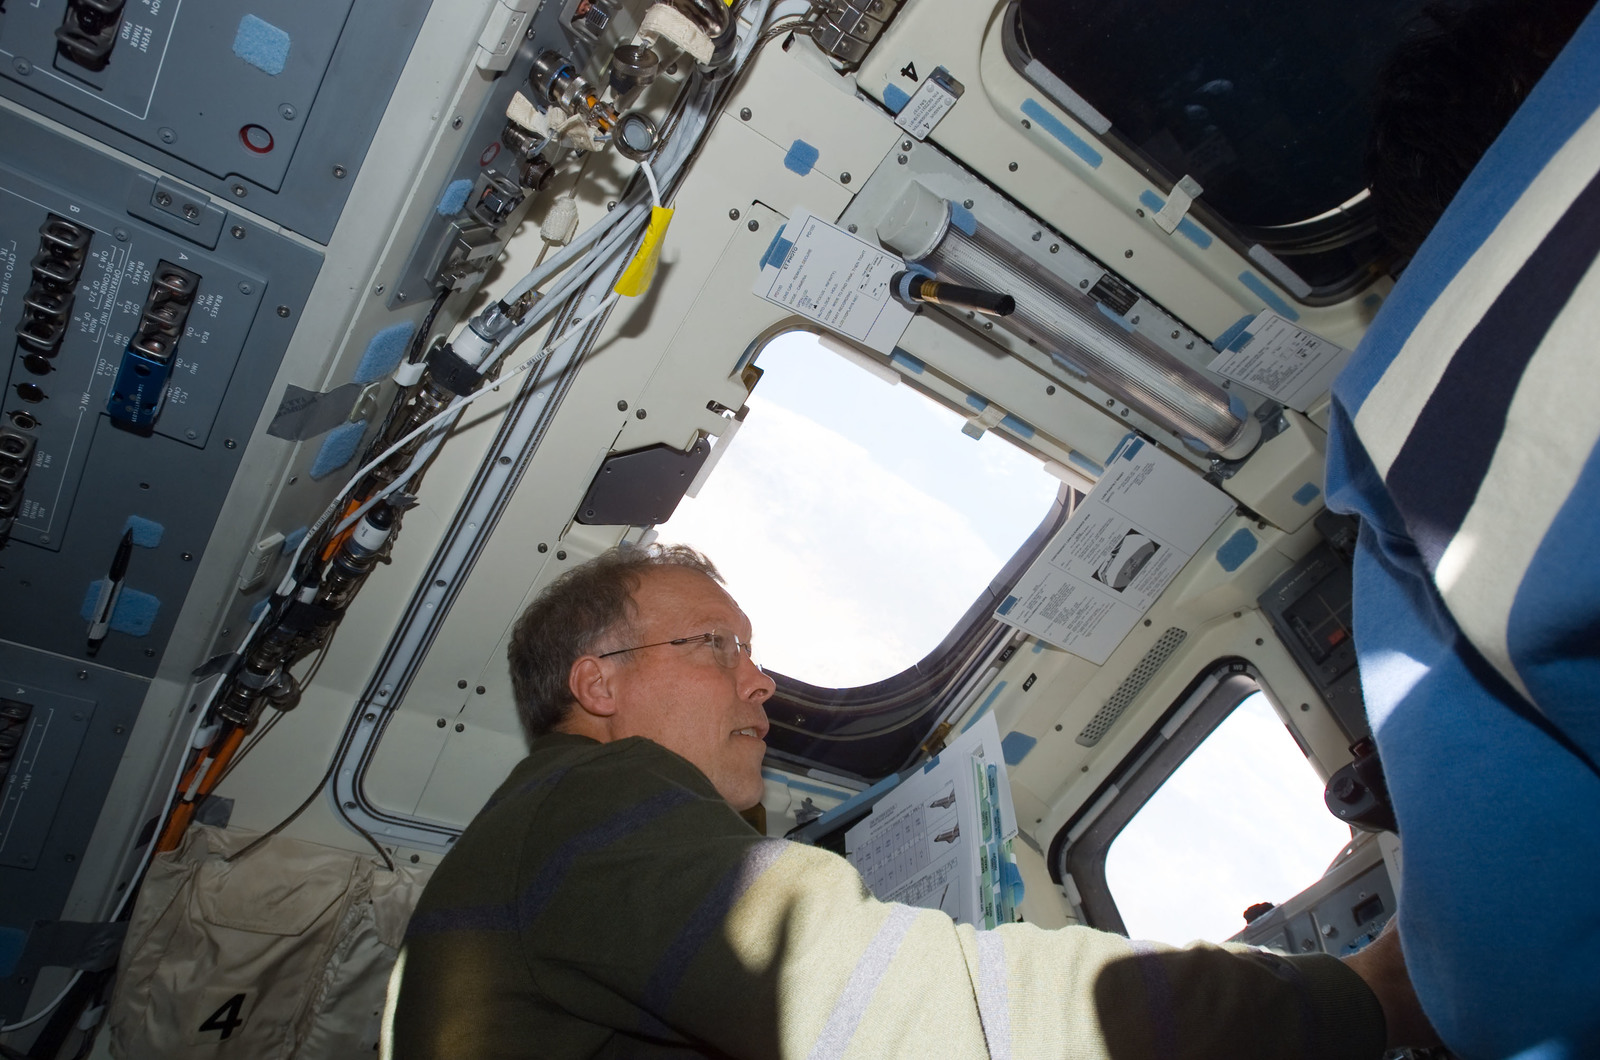 S123E005624 - STS-123 - Gorie at the aft FD window during STS-123 mission